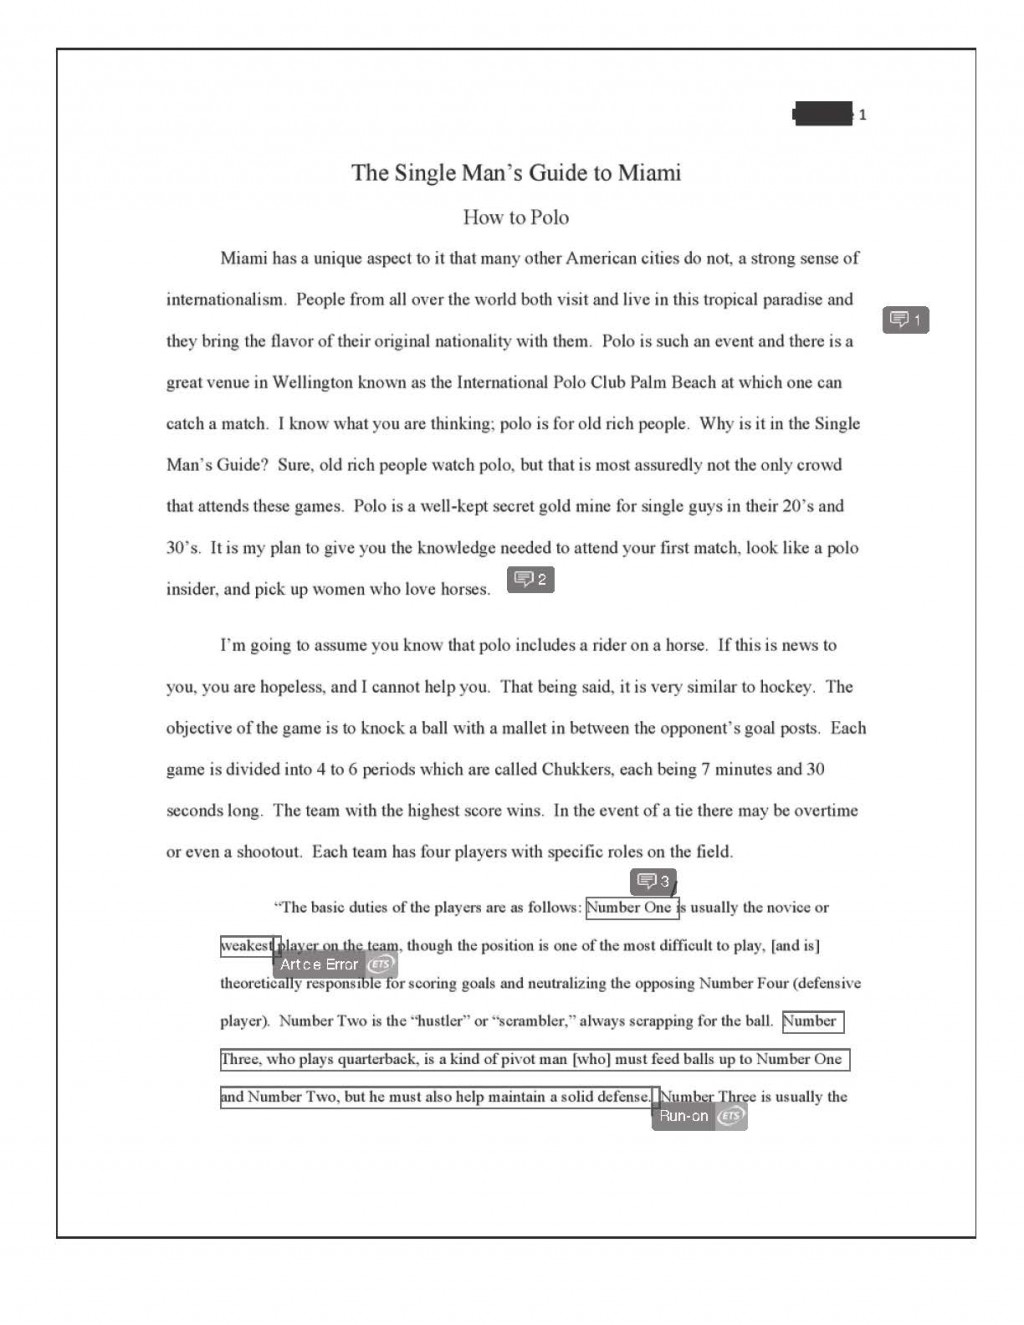 005 Informative Essay Topics Essays Sample Funny Argumentative For Middle School Final How To Polo Redacted P College Students Hilarious Good Remarkable Prompt 4th Grade Prompts High Expository Large